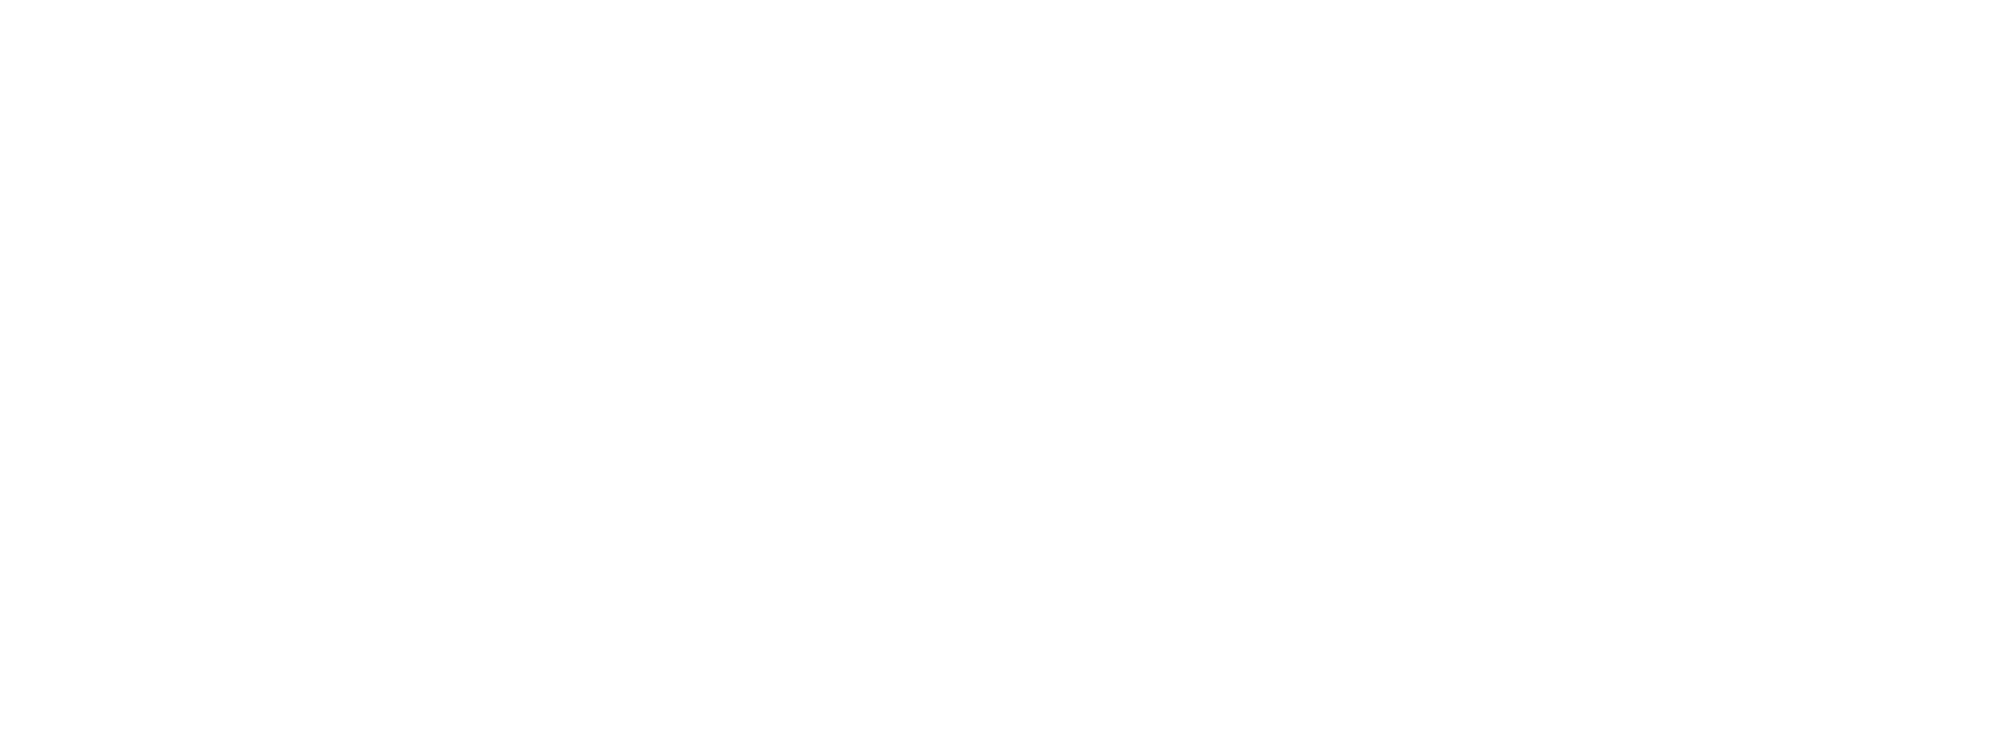 Real Live Entertainment-logo 2019 white.png